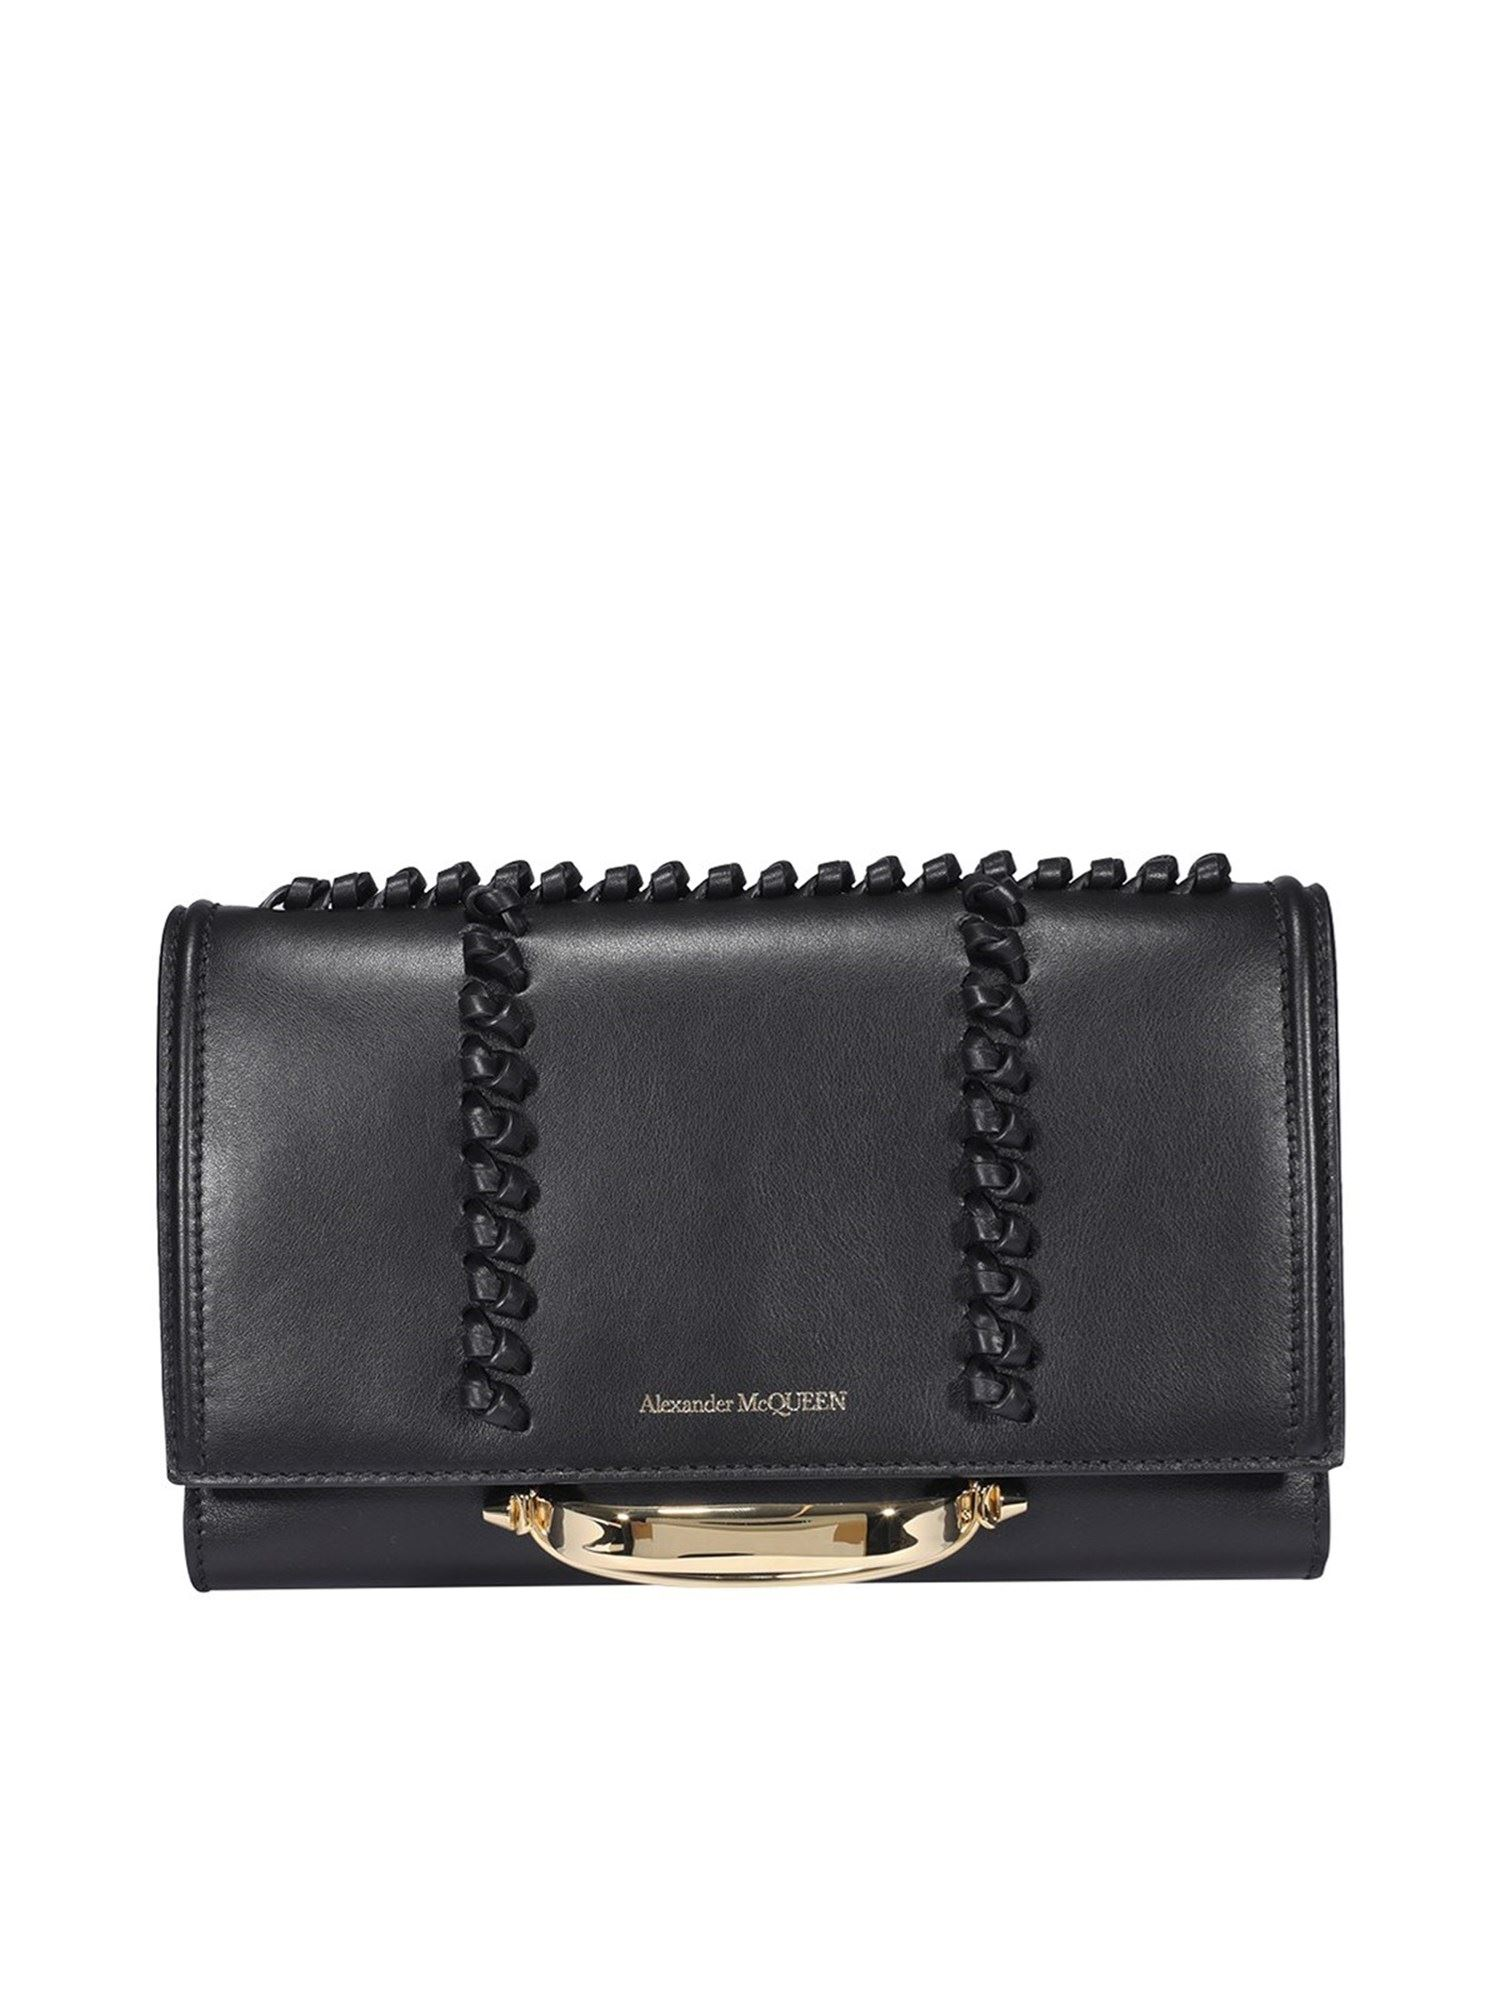 Alexander Mcqueen ALEXANDER MCQUEEN THE STORY CLUTCH IN BLACK